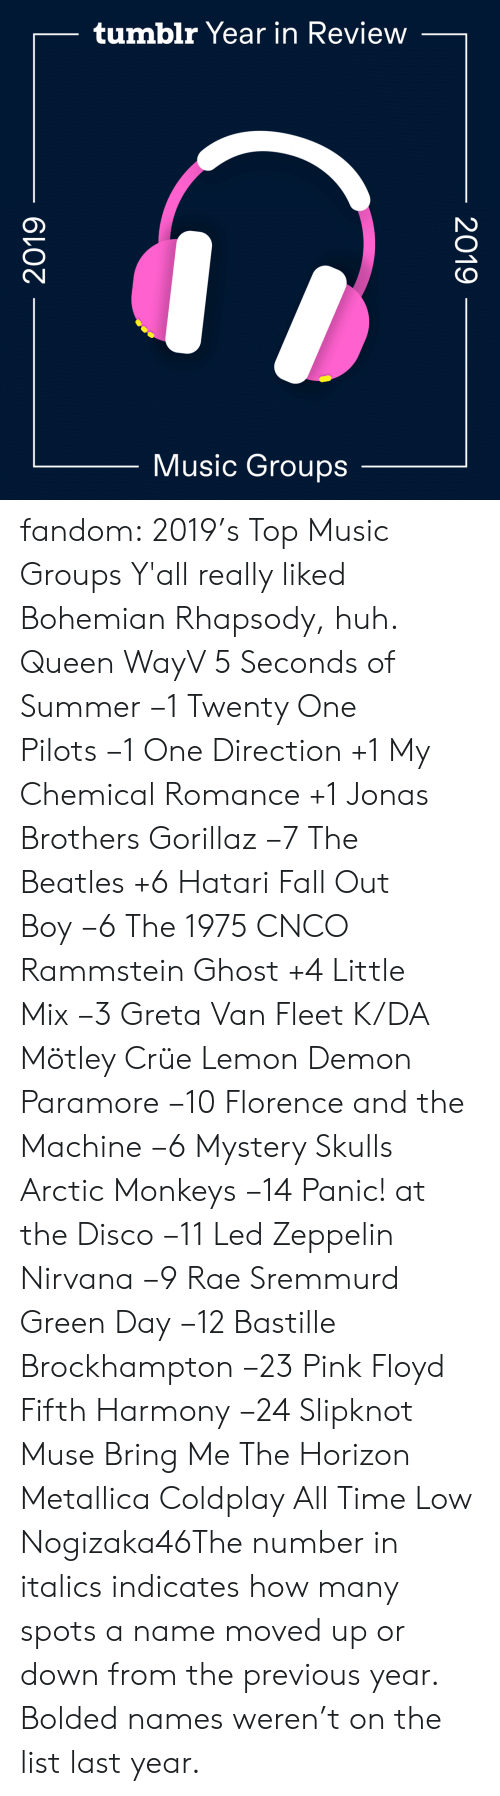 Mystery: tumblr Year in Review  Music Groups  2019  2019 fandom:  2019's Top Music Groups  Y'all really liked Bohemian Rhapsody, huh.  Queen  WayV  5 Seconds of Summer −1  Twenty One Pilots −1  One Direction +1  My Chemical Romance +1  Jonas Brothers  Gorillaz −7  The Beatles +6  Hatari  Fall Out Boy −6  The 1975  CNCO  Rammstein  Ghost +4  Little Mix −3  Greta Van Fleet  K/DA  Mötley Crüe  Lemon Demon  Paramore −10  Florence and the Machine −6  Mystery Skulls  Arctic Monkeys −14  Panic! at the Disco −11  Led Zeppelin   Nirvana −9  Rae Sremmurd  Green Day −12  Bastille  Brockhampton −23  Pink Floyd  Fifth Harmony −24  Slipknot  Muse  Bring Me The Horizon  Metallica  Coldplay  All Time Low  Nogizaka46The number in italics indicates how many spots a name moved up or down from the previous year. Bolded names weren't on the list last year.